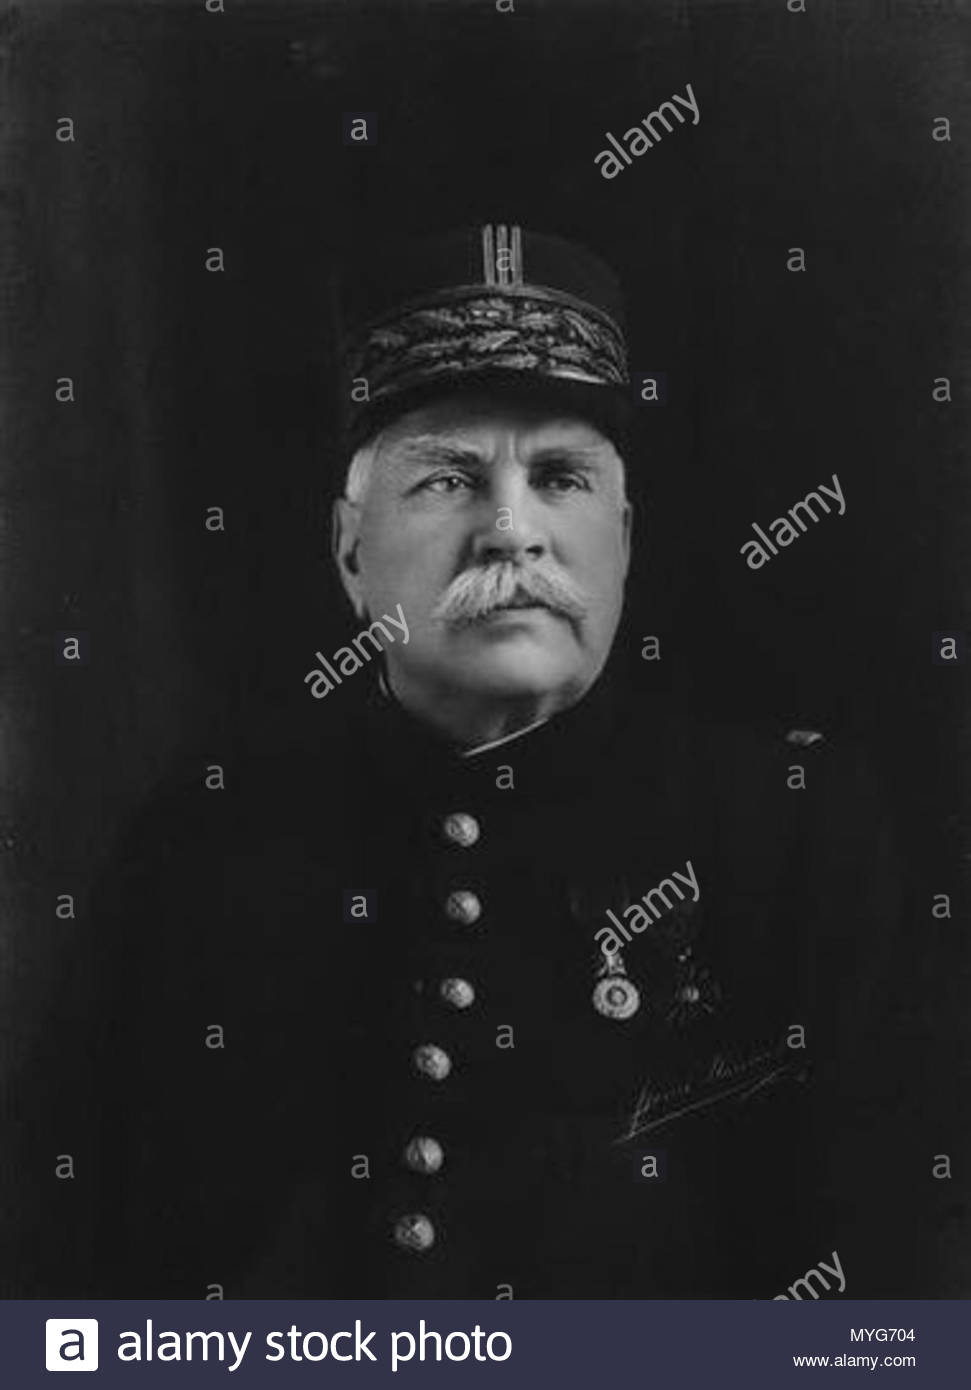 . English: Joseph Joffre . 30 October 2012, 17:07:52.   Henri Manuel  (1874–1947)    Description French photographer  Date of birth/death 24 April 1874 11 September 1947  Location of birth/death Paris Neuilly-sur-Seine  Work location Paris  Authority control  : Q3131559 VIAF: 69197545 ISNI: 0000 0001 2281 4329 ULAN: 500054098 SUDOC: 091373182 BNF: 14841349b 235 Henri Manuel - Joseph Joffre - Stock Image